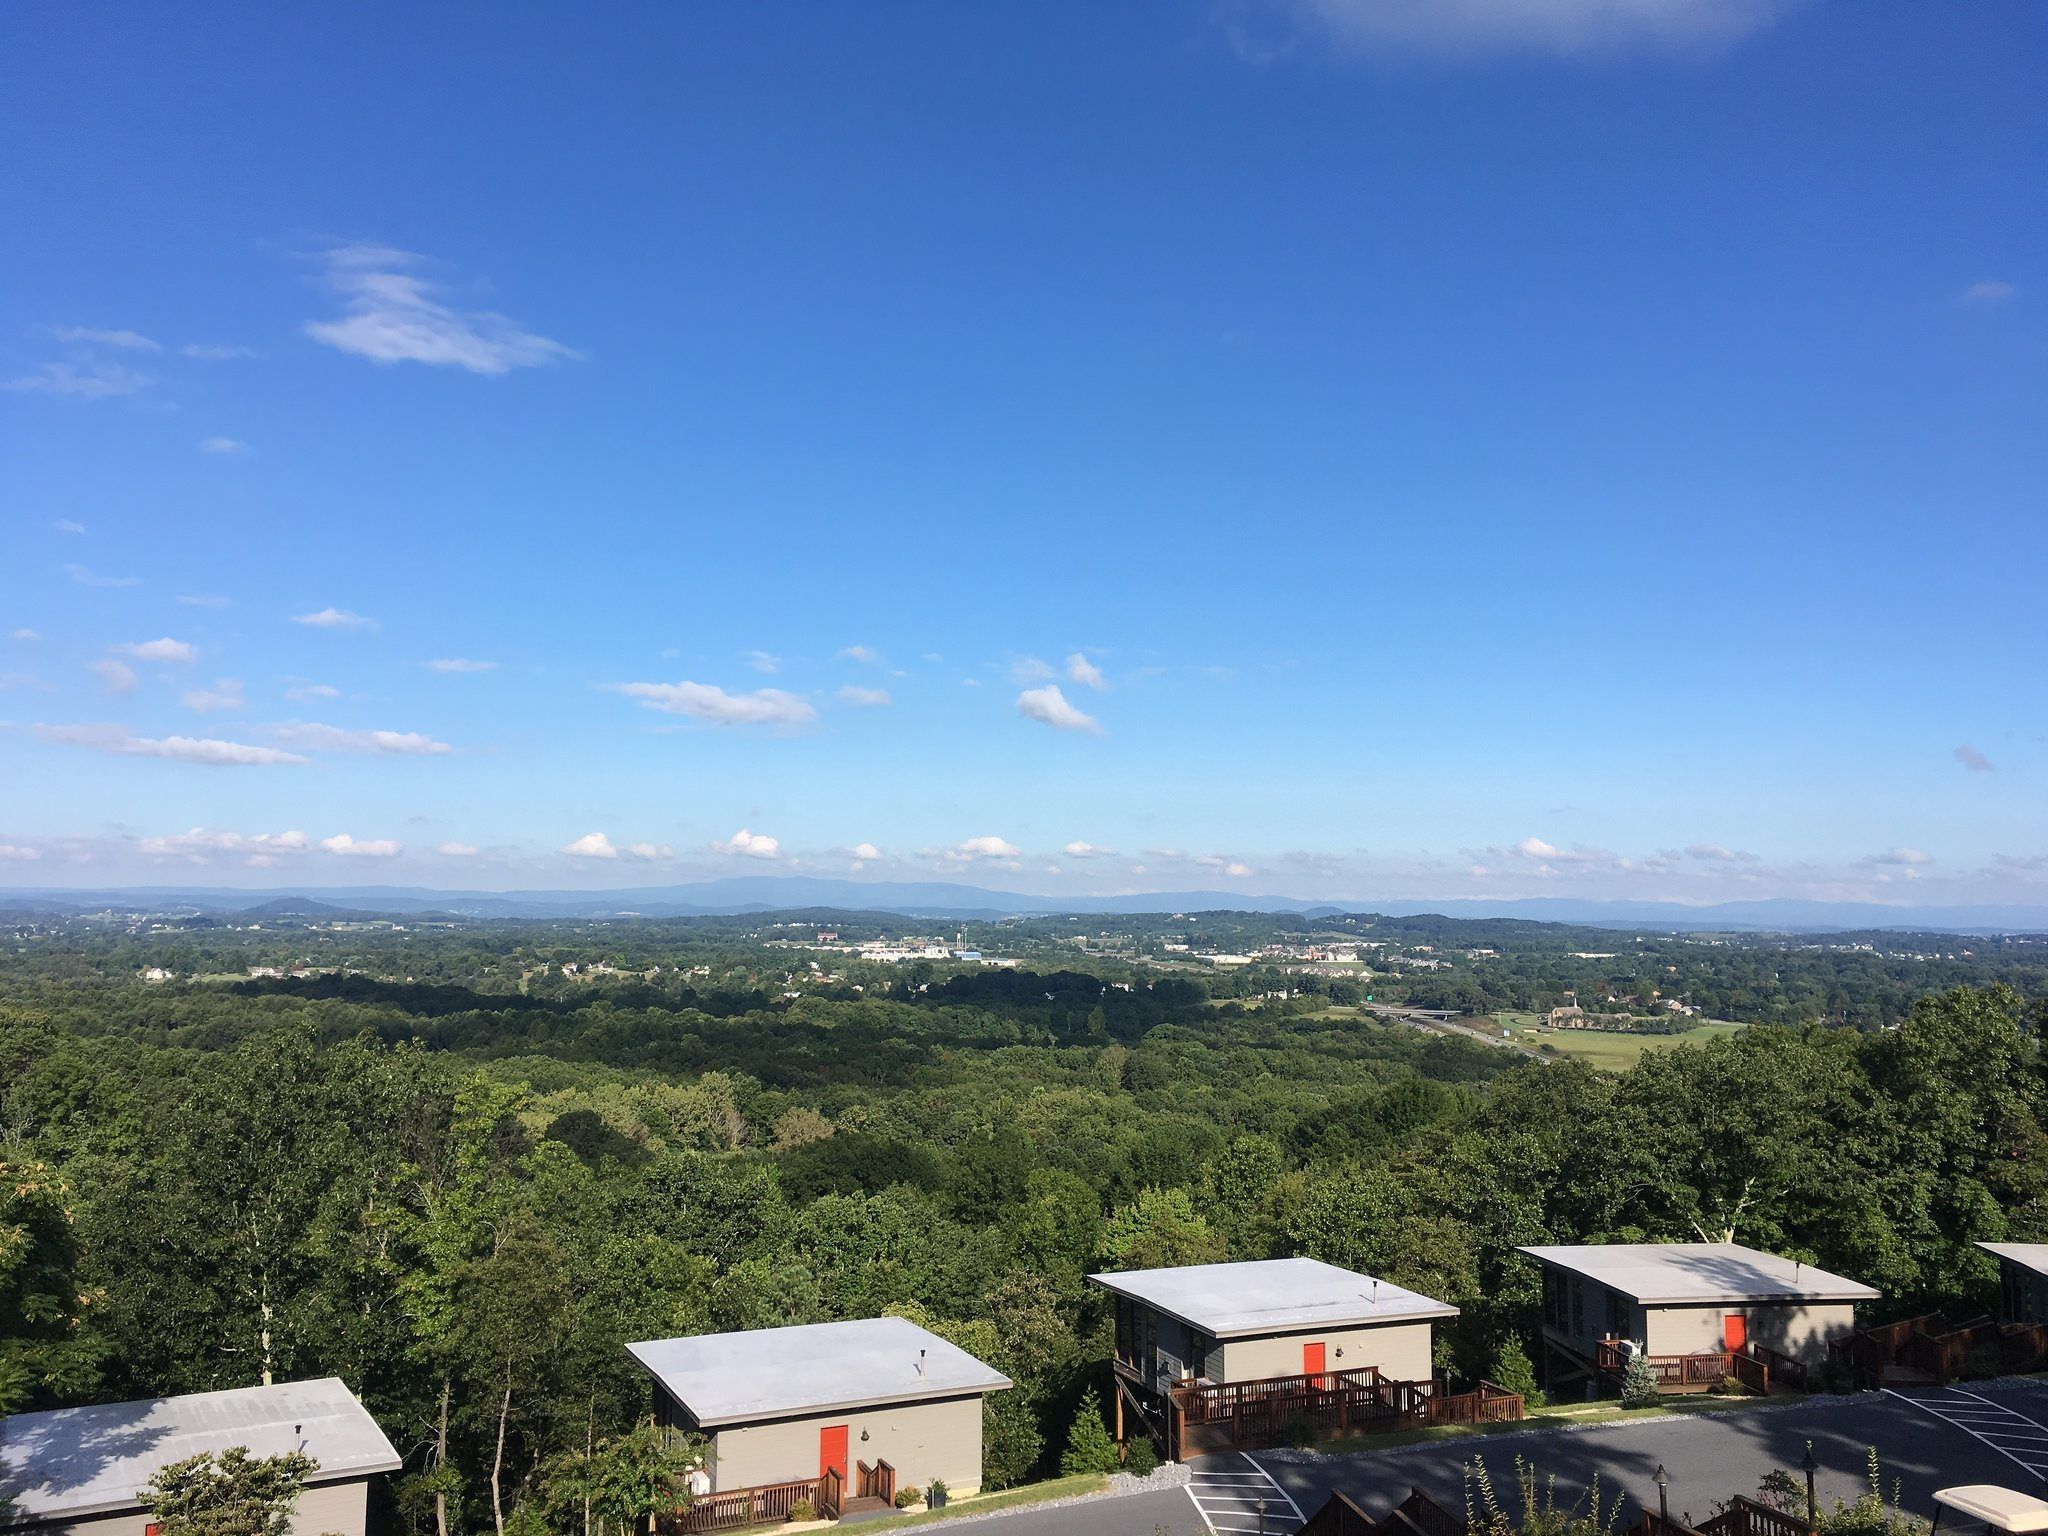 Hotel Review: Iris Inn - My View from the Middle Seat